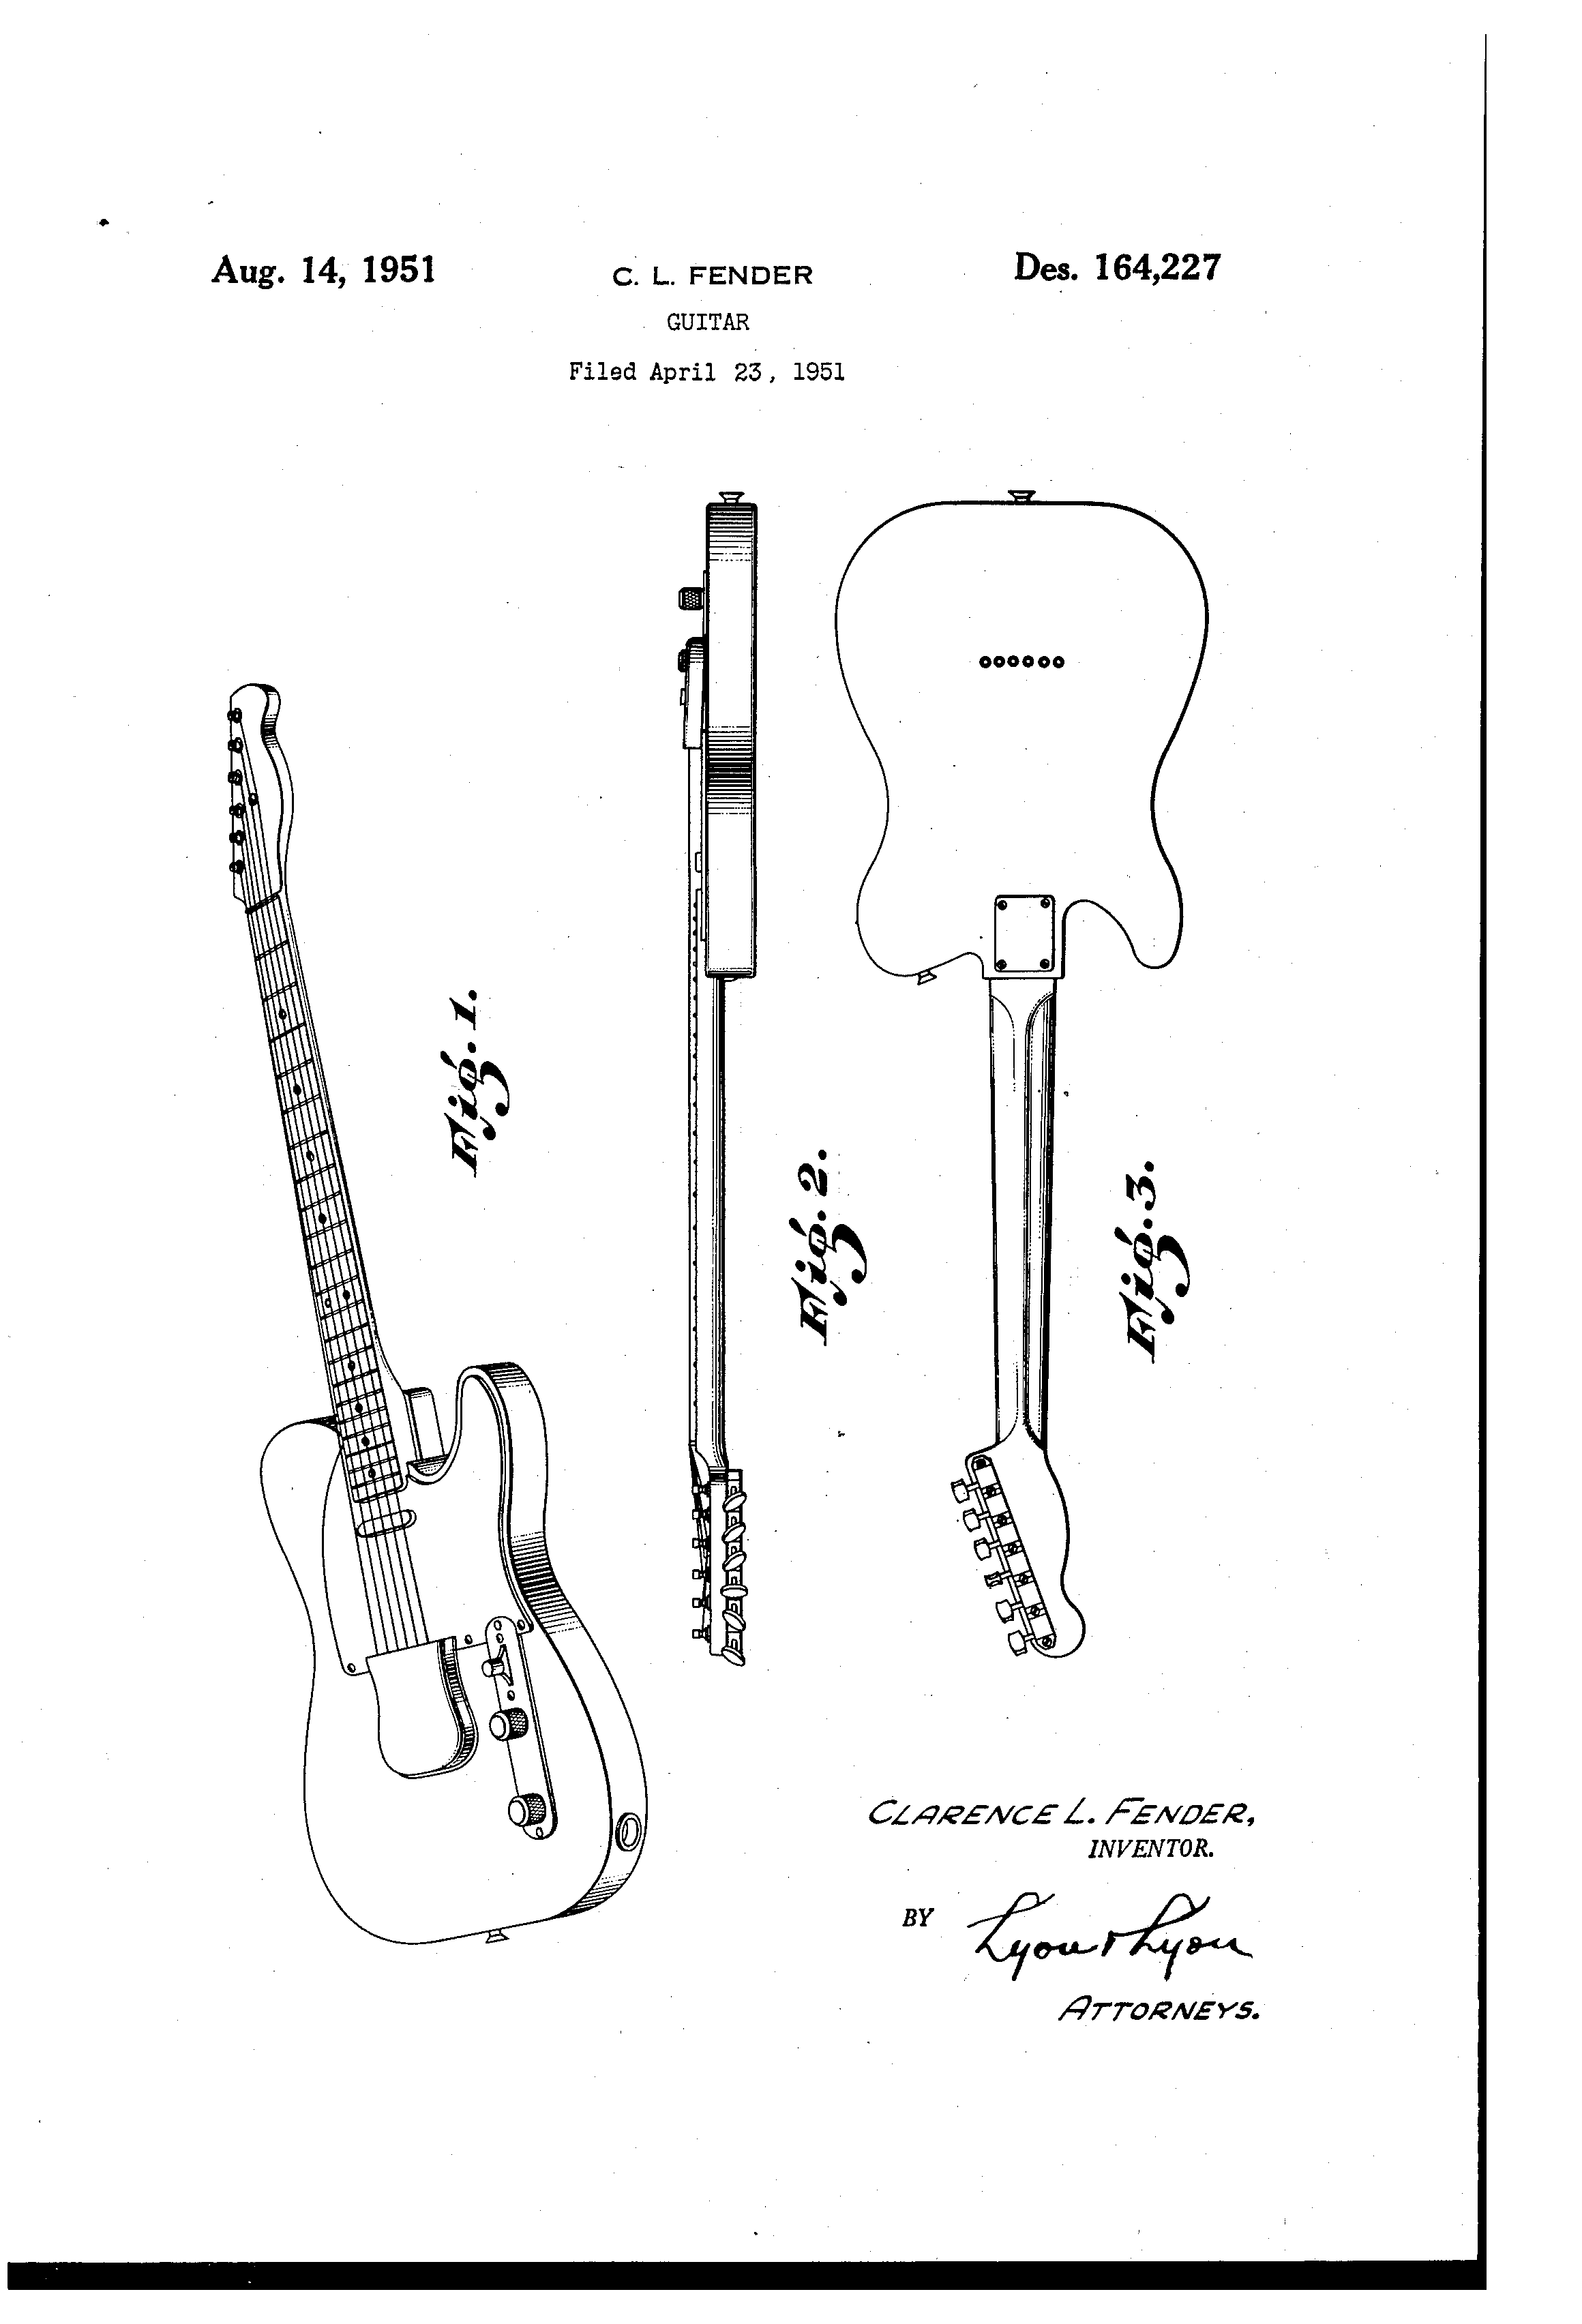 small resolution of patent usd164227 fender guitar google patents